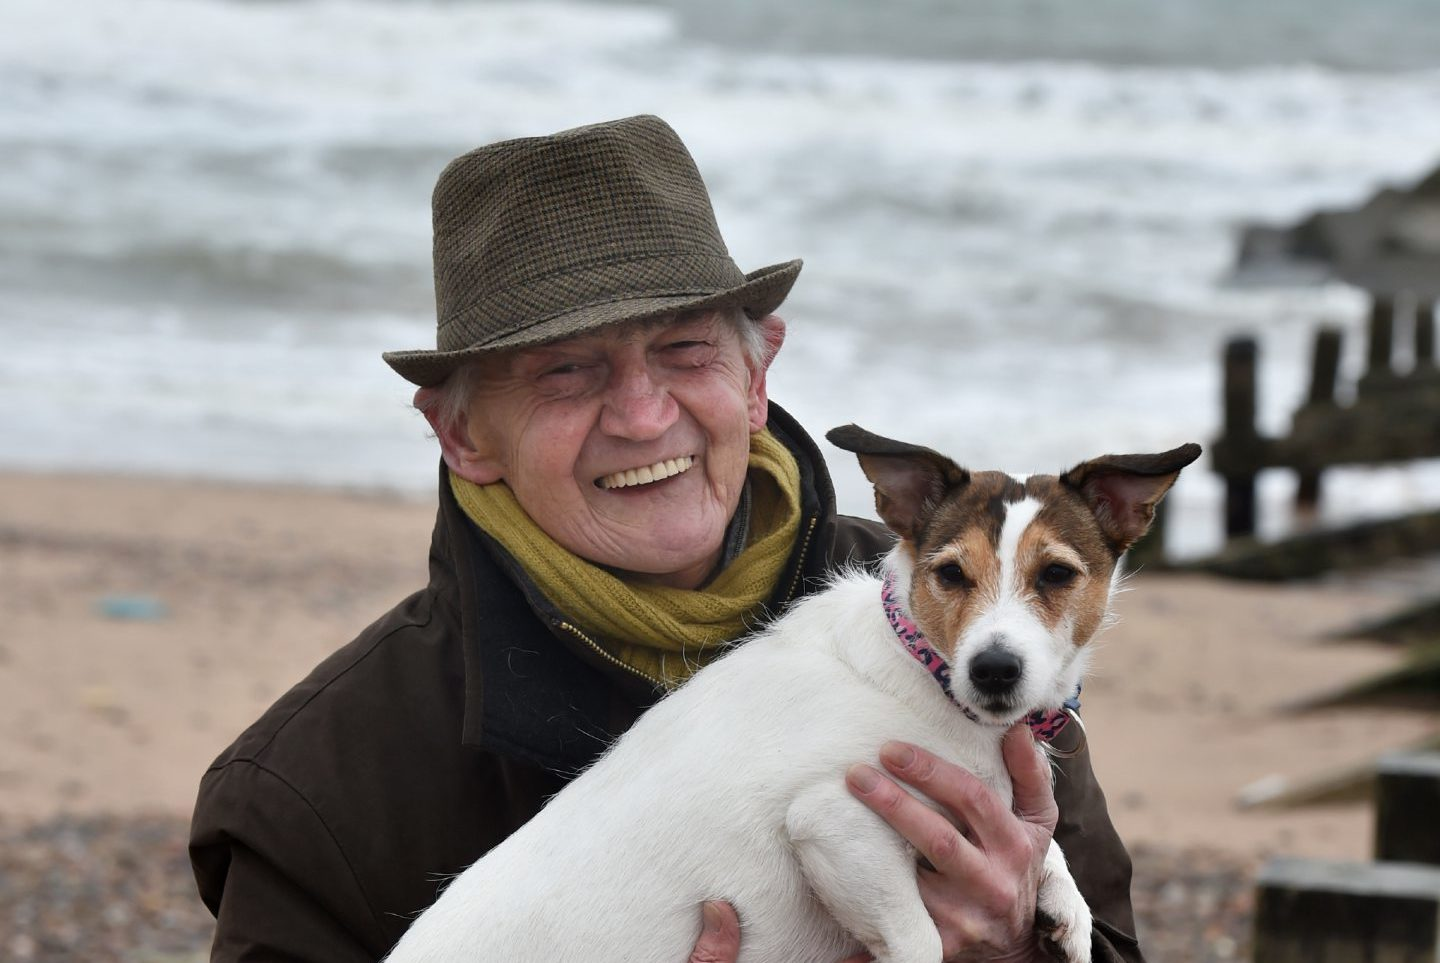 Joe McGunnigle with his Jack Russell (Misty) at Aberdeen Beach.